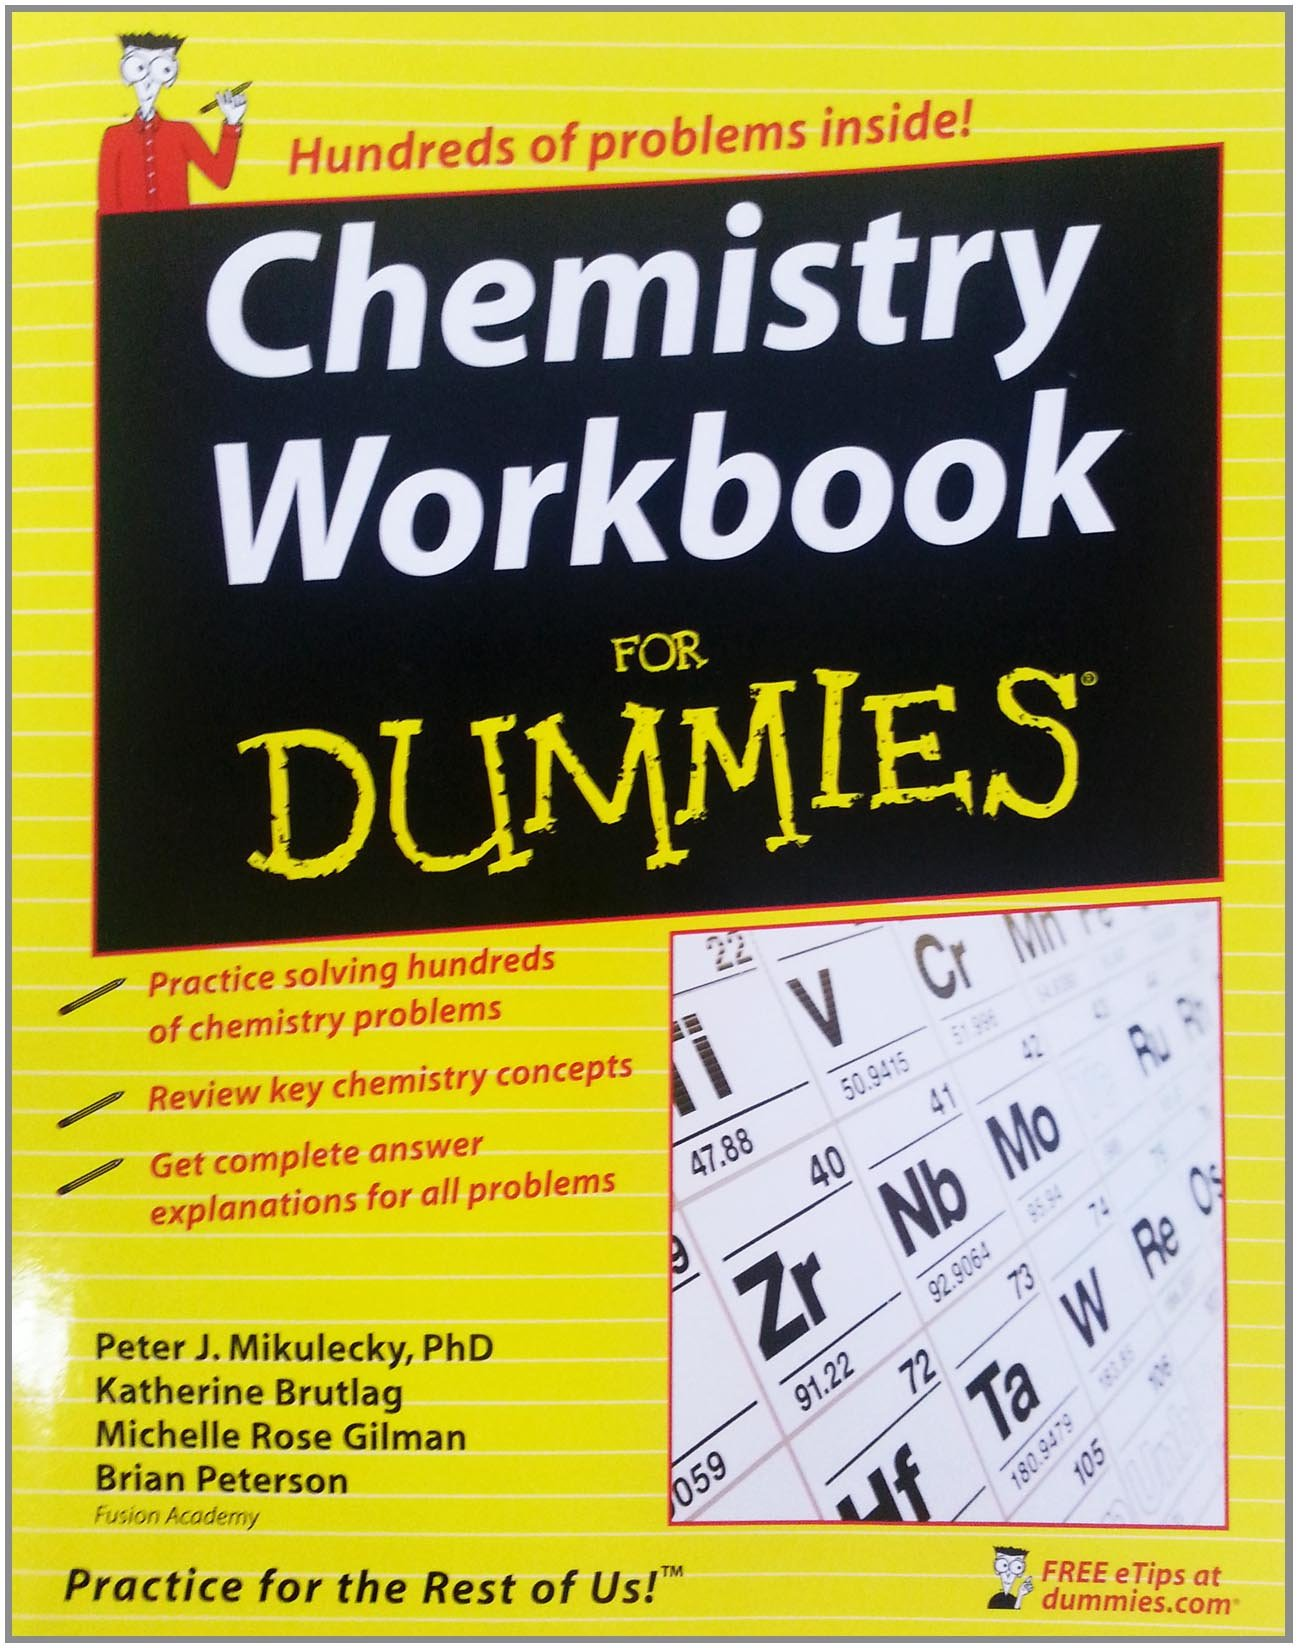 Chemistry Workbook For Dummies: Amazon.ca: Peter J. Mikulecky, Katherine  Brutlag, Michelle Rose Gilman, Brian Peterson: Books